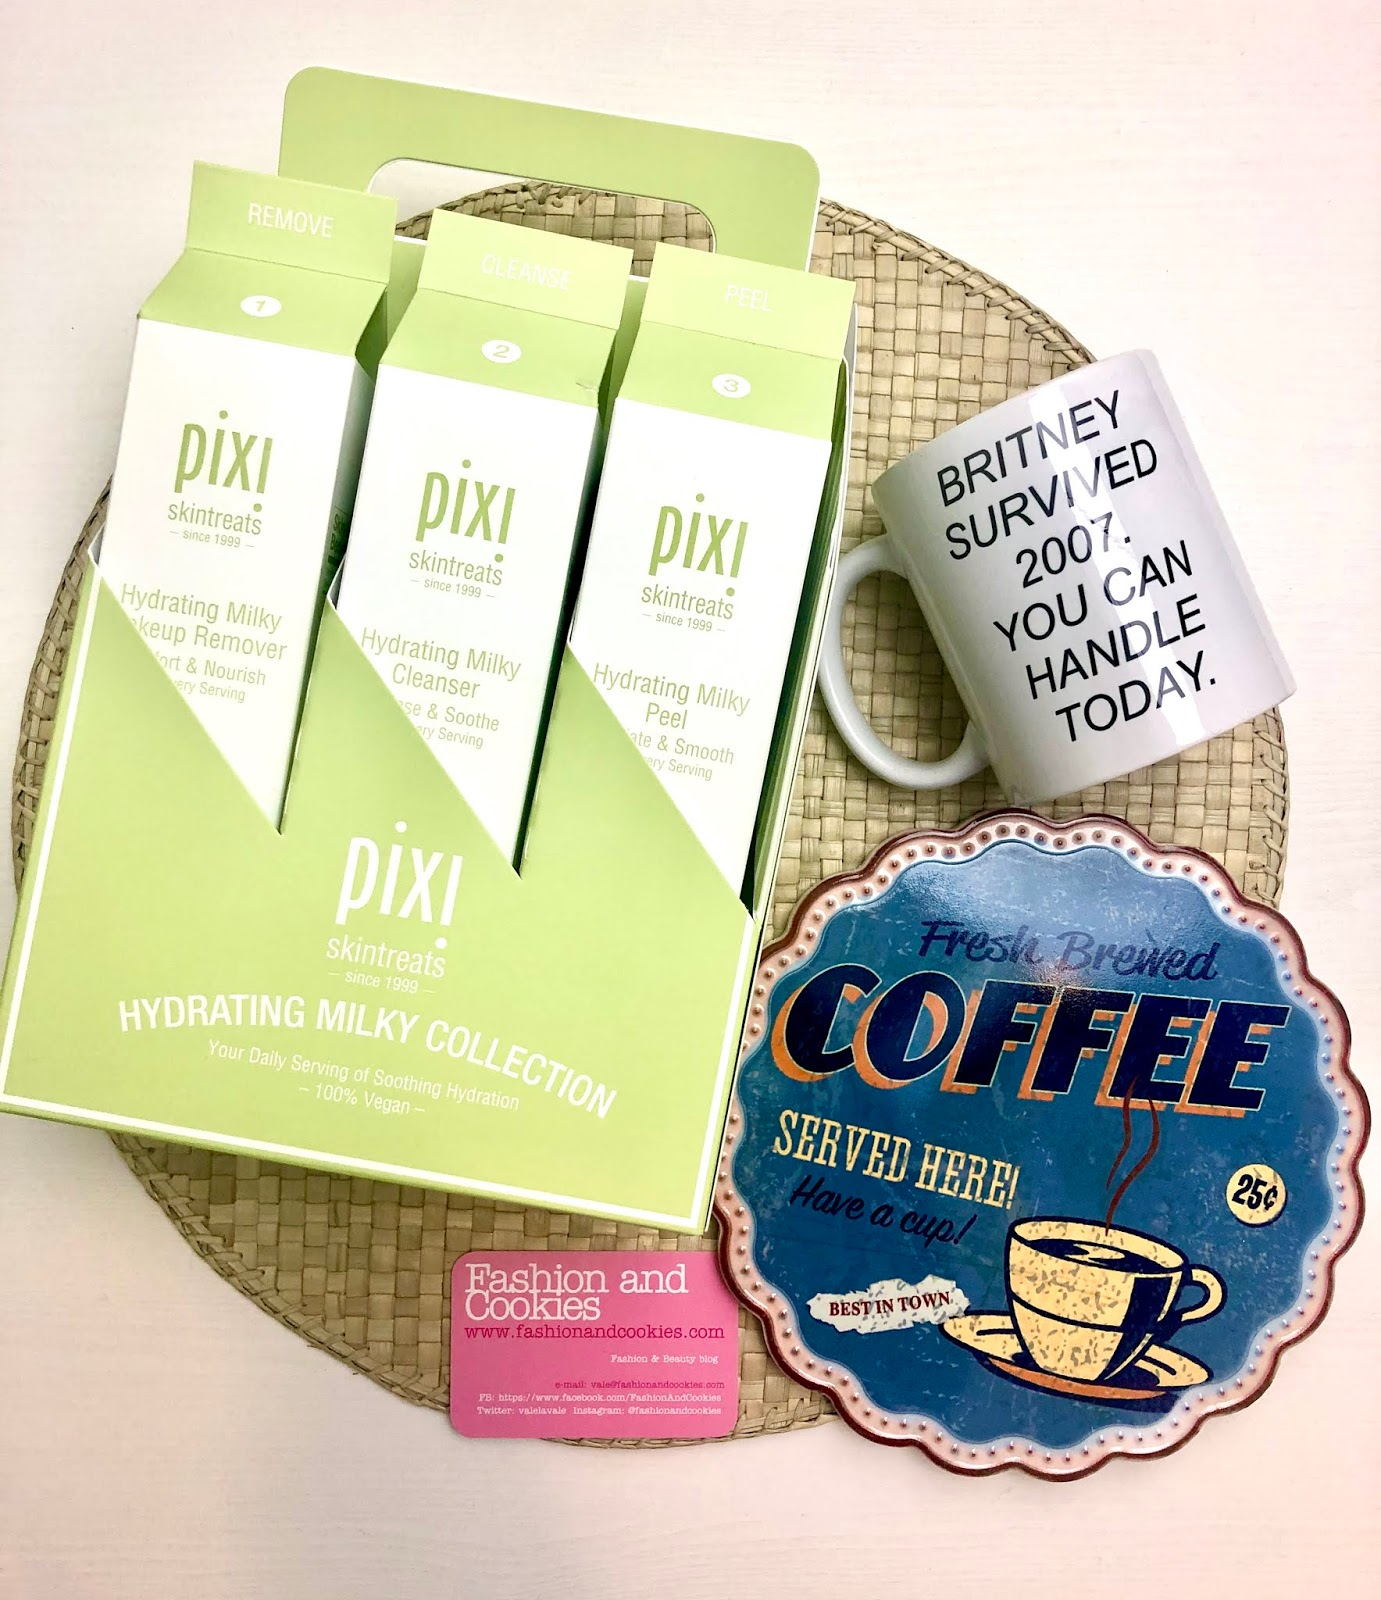 Pixi Beauty Hydrating Milky Collection on Fashion and Cookies beauty blog